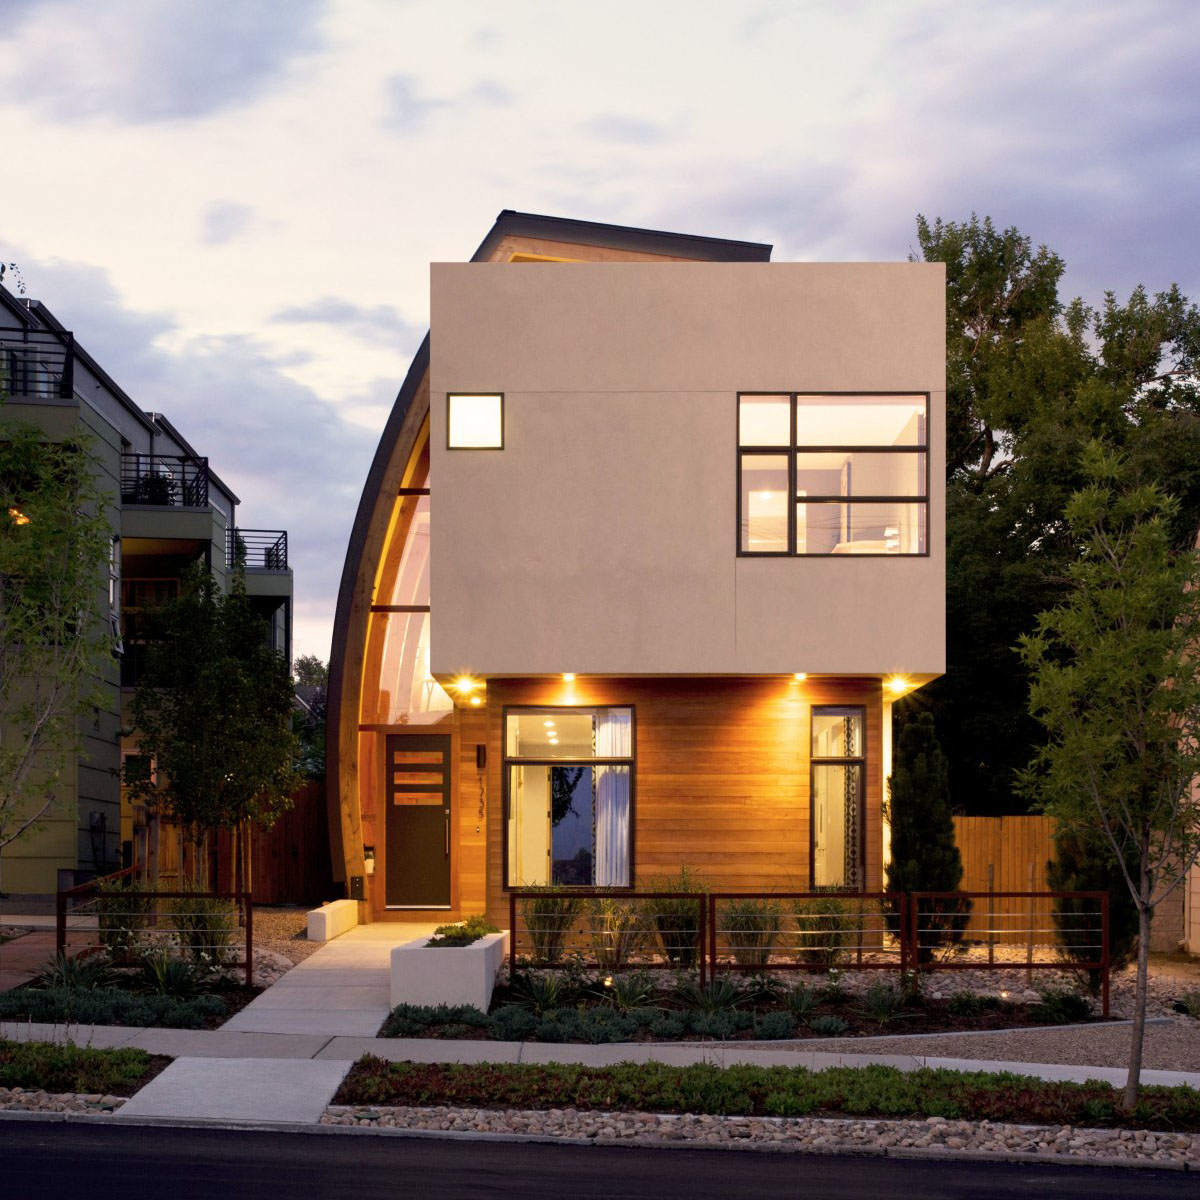 Inspiring urban infill with sun catching curve metal Contemporary housing